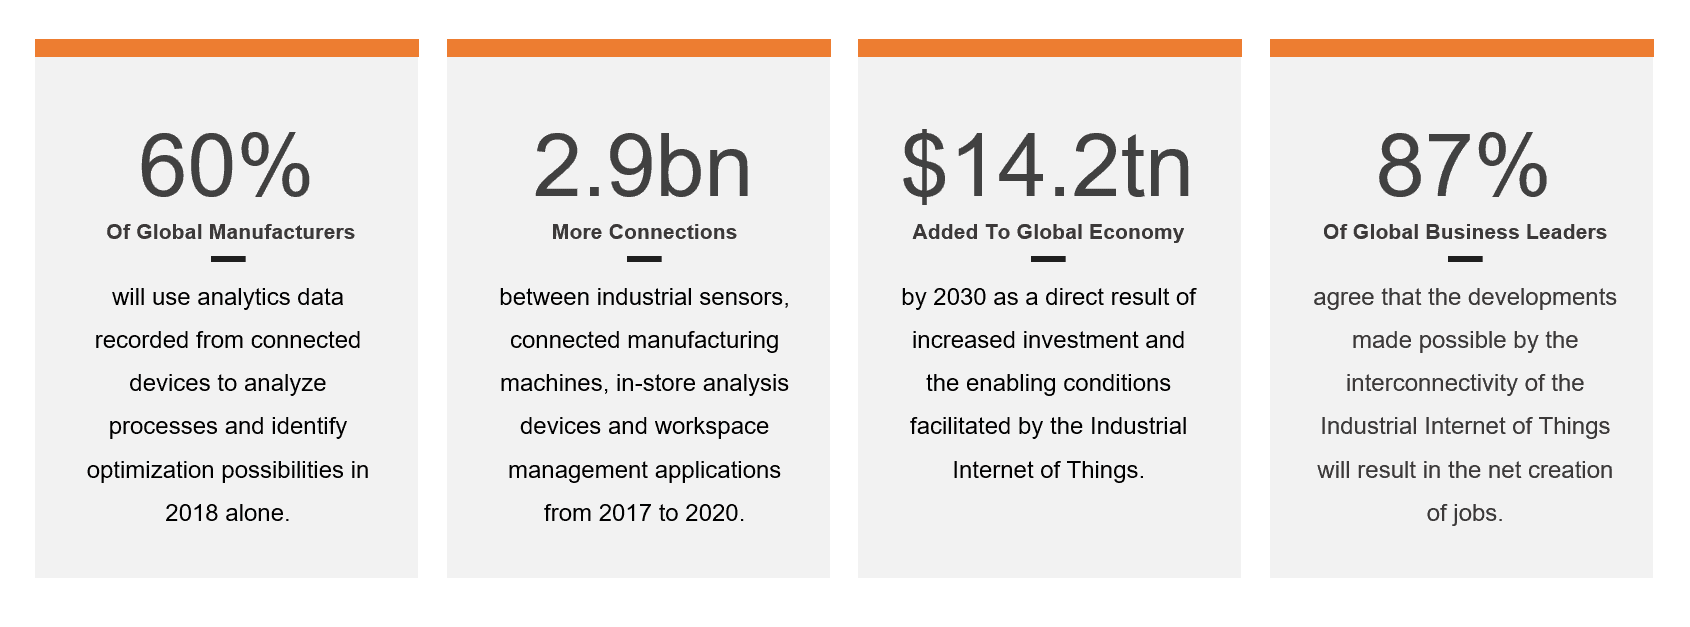 an image of statistics on IIoT devices suggesting the Industrial Internet of Things will becomes stronger as one of the top 5 technology trends in 2019 according to encompass solutions.